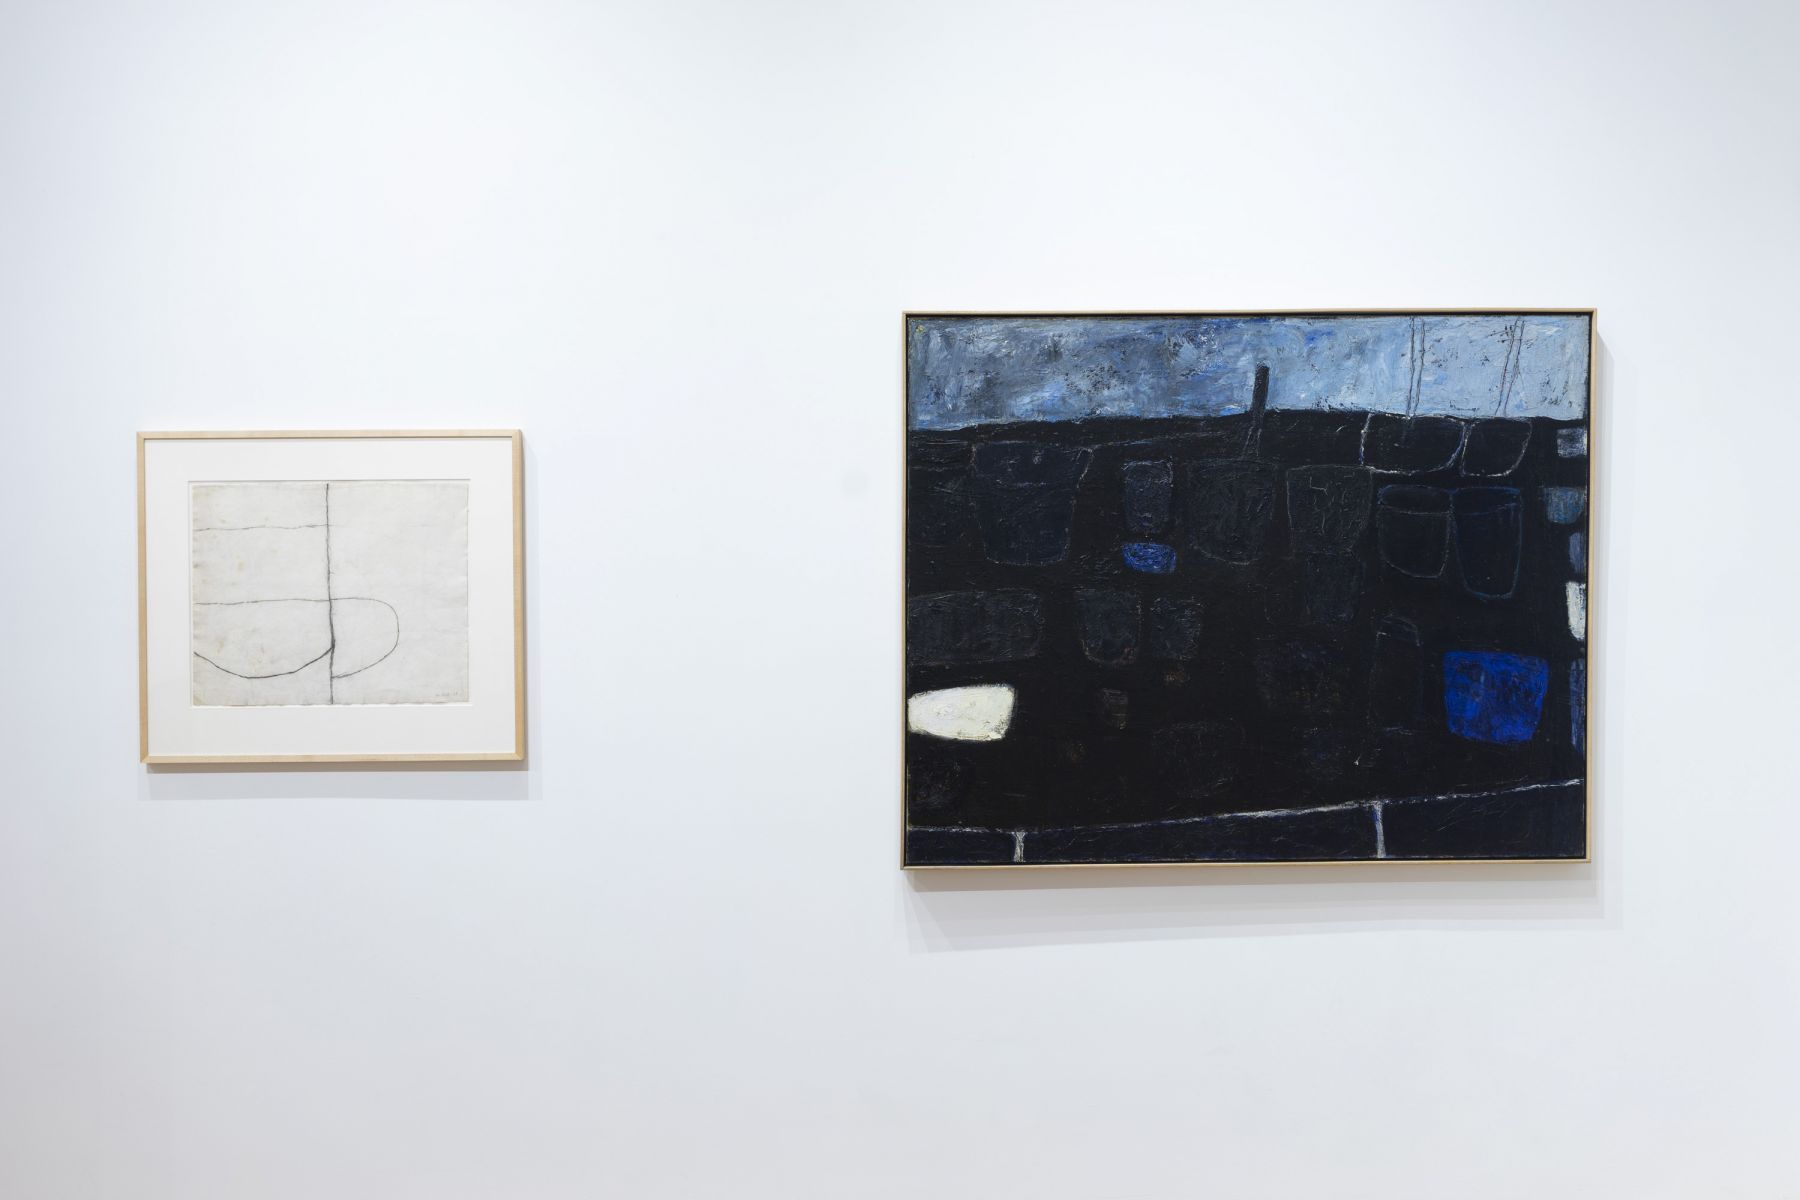 Installation view of William Scott: Paintings and Drawings, Fifties Through Eighties at Anita Rogers Gallery